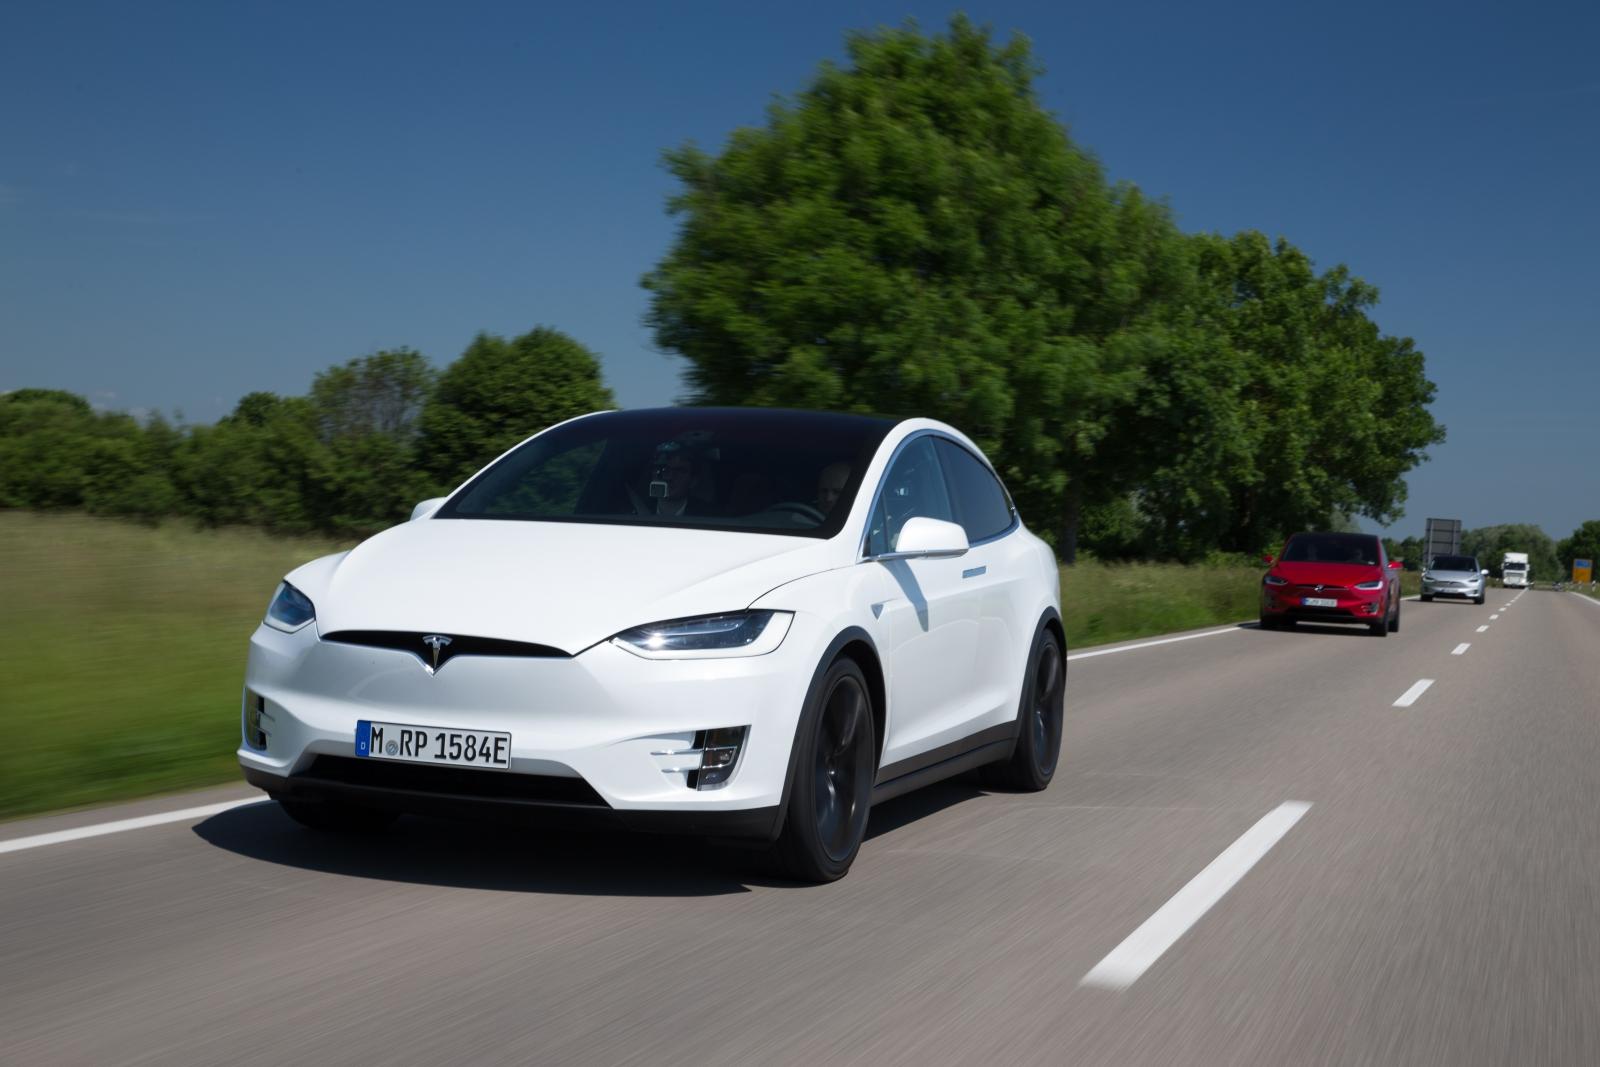 Tesla P90d For Sale >> Tesla Model X UK prices and release date revealed, starting from £67,100